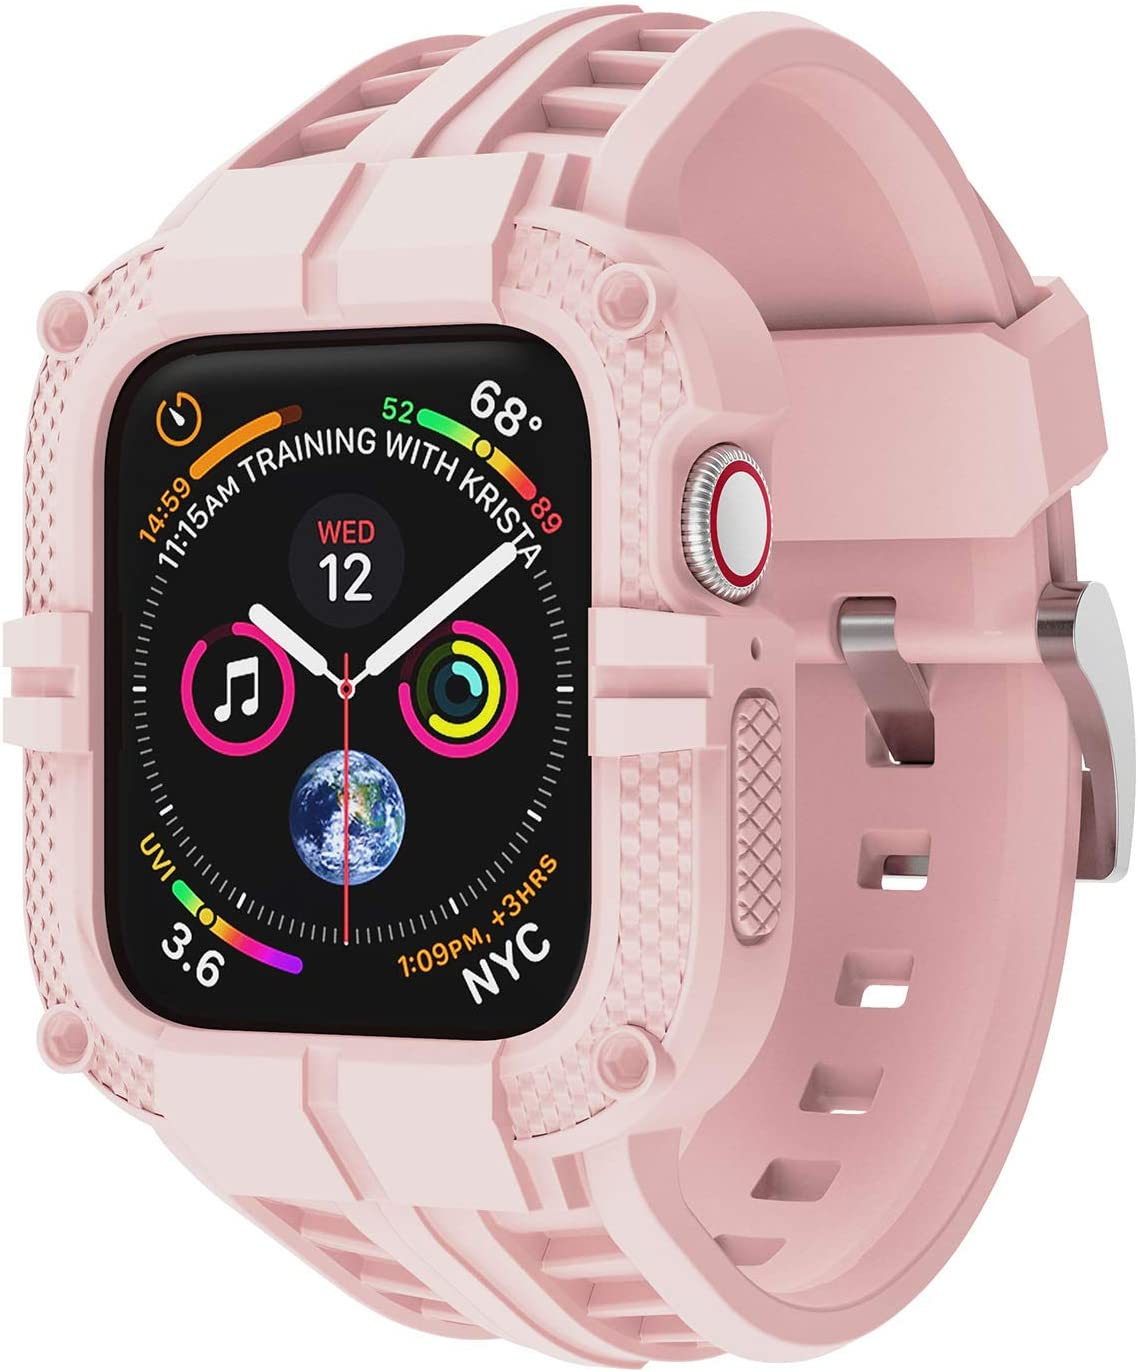 T-ENGINE Band Compatible with Apple Watch Band 44mm Series 4 Series 6/5/SE, TPU Rugged Sports Band with Full Protection Case for Men/Women, Only for 44mm Pink